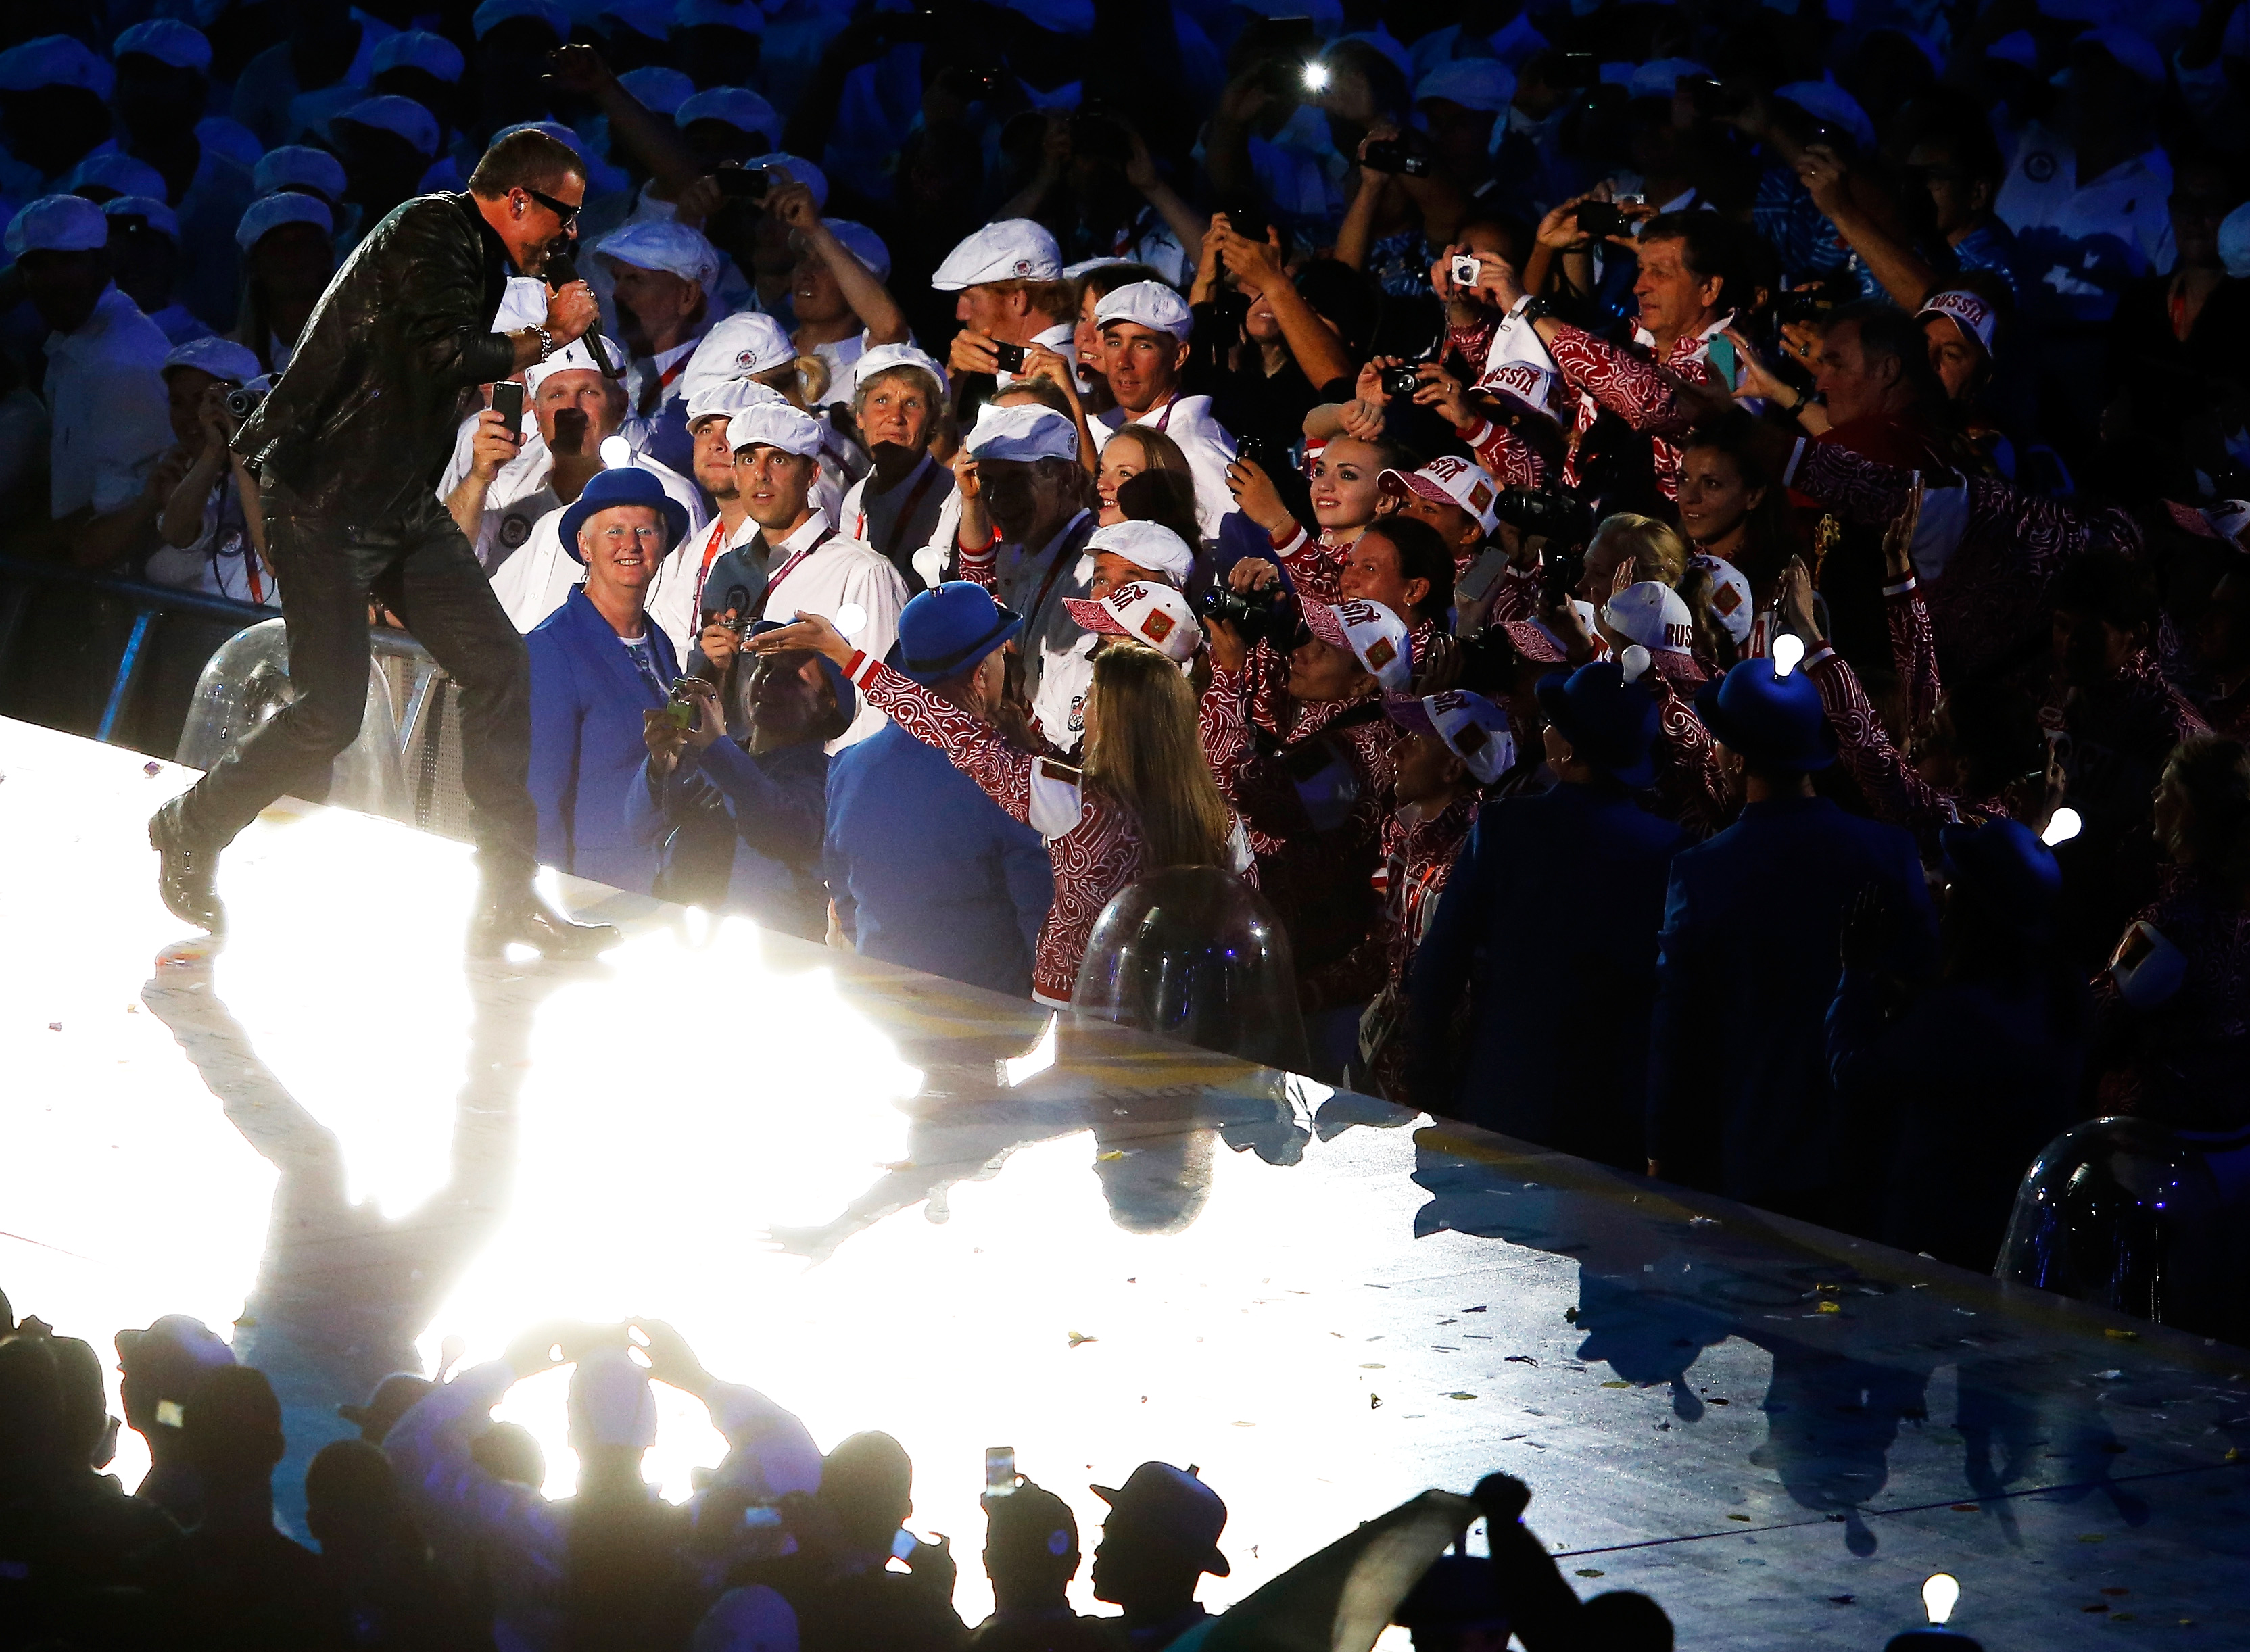 George Michael performs during the Closing Ceremony on Day 16 of the 2012 Olympic Games at Olympic Stadium in London, on Aug. 12, 2012.